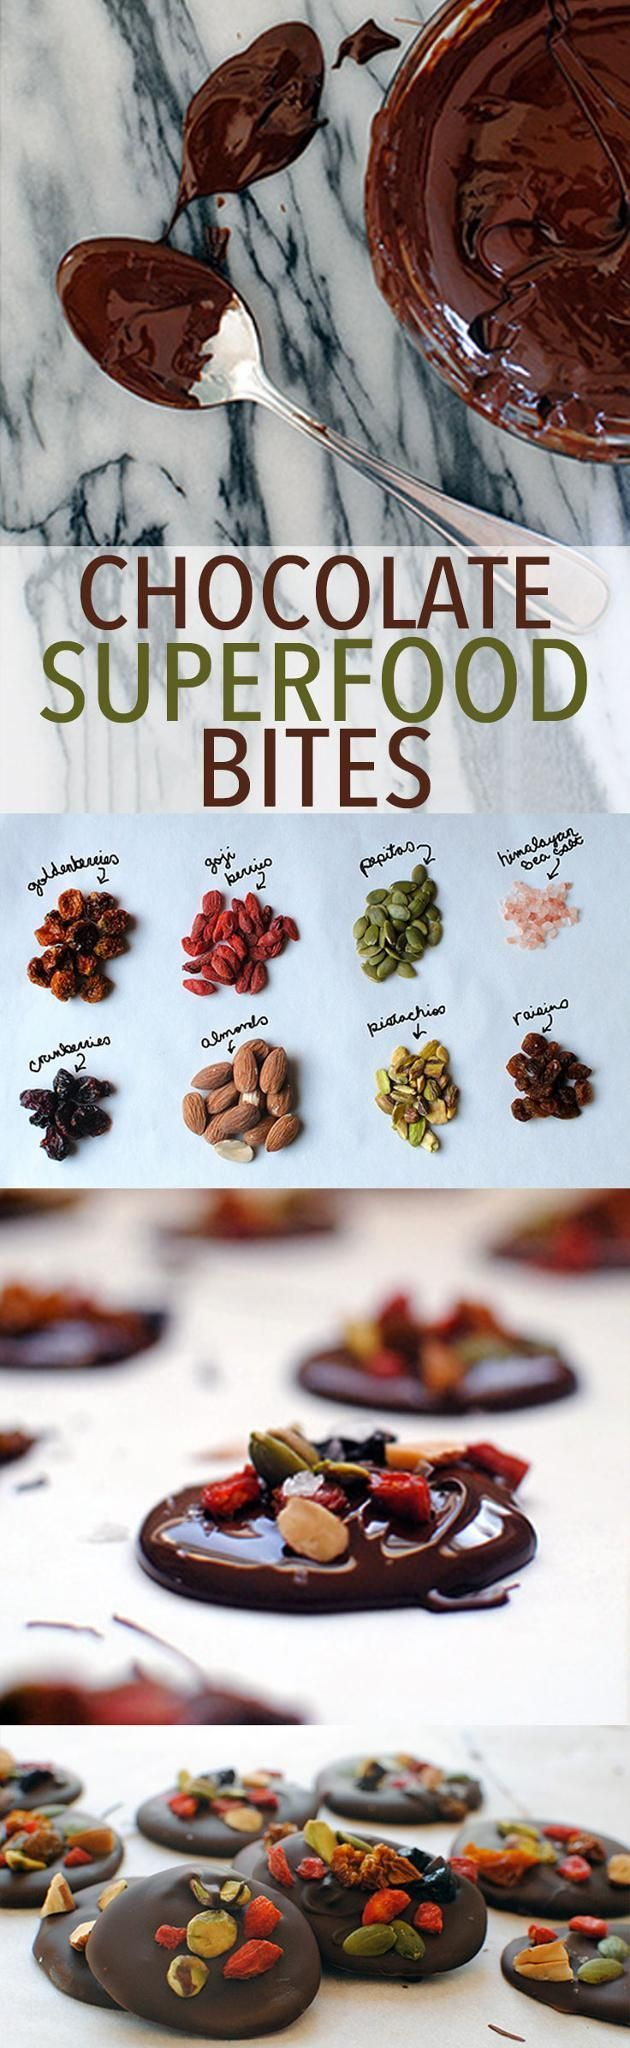 Chocolate Superfood Bites -- Sweet, super, and simple to make. // recipes // desserts // snacks // healthy // nuts // salty // almonds // pistachios // raisins // cranberries // goji berries // pumpkin seeds // goldenberries // holidays // treats // Beachbody // BeachbodyBlog.com